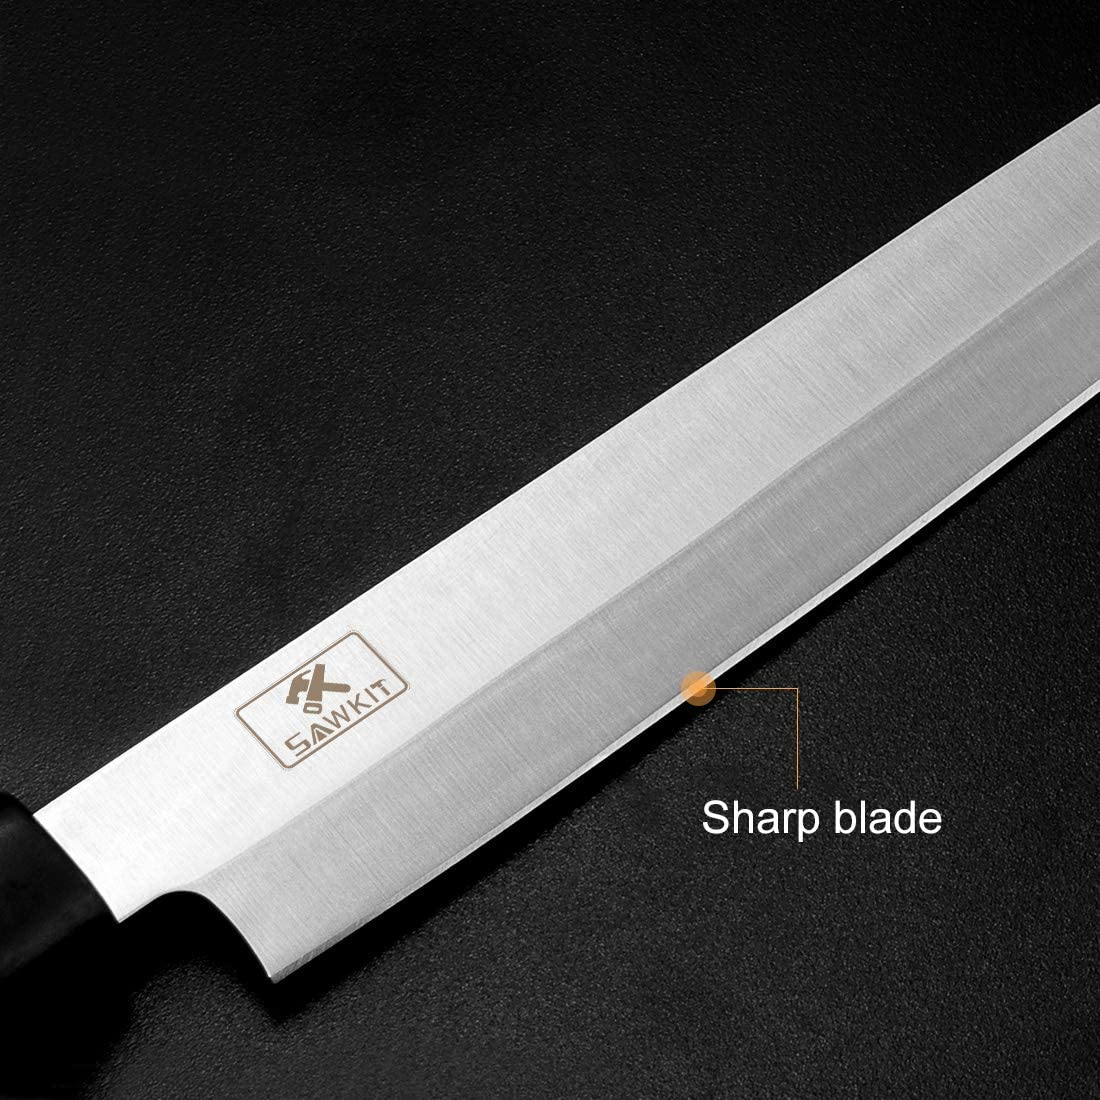 SAWKIT 7 inch Sashimi Knife//Sushi Chefs knifes//Stainless Steel Slicing Slicing Meat and Fish Peeling Multi-Purpose Kitchen Knifes 7 inch